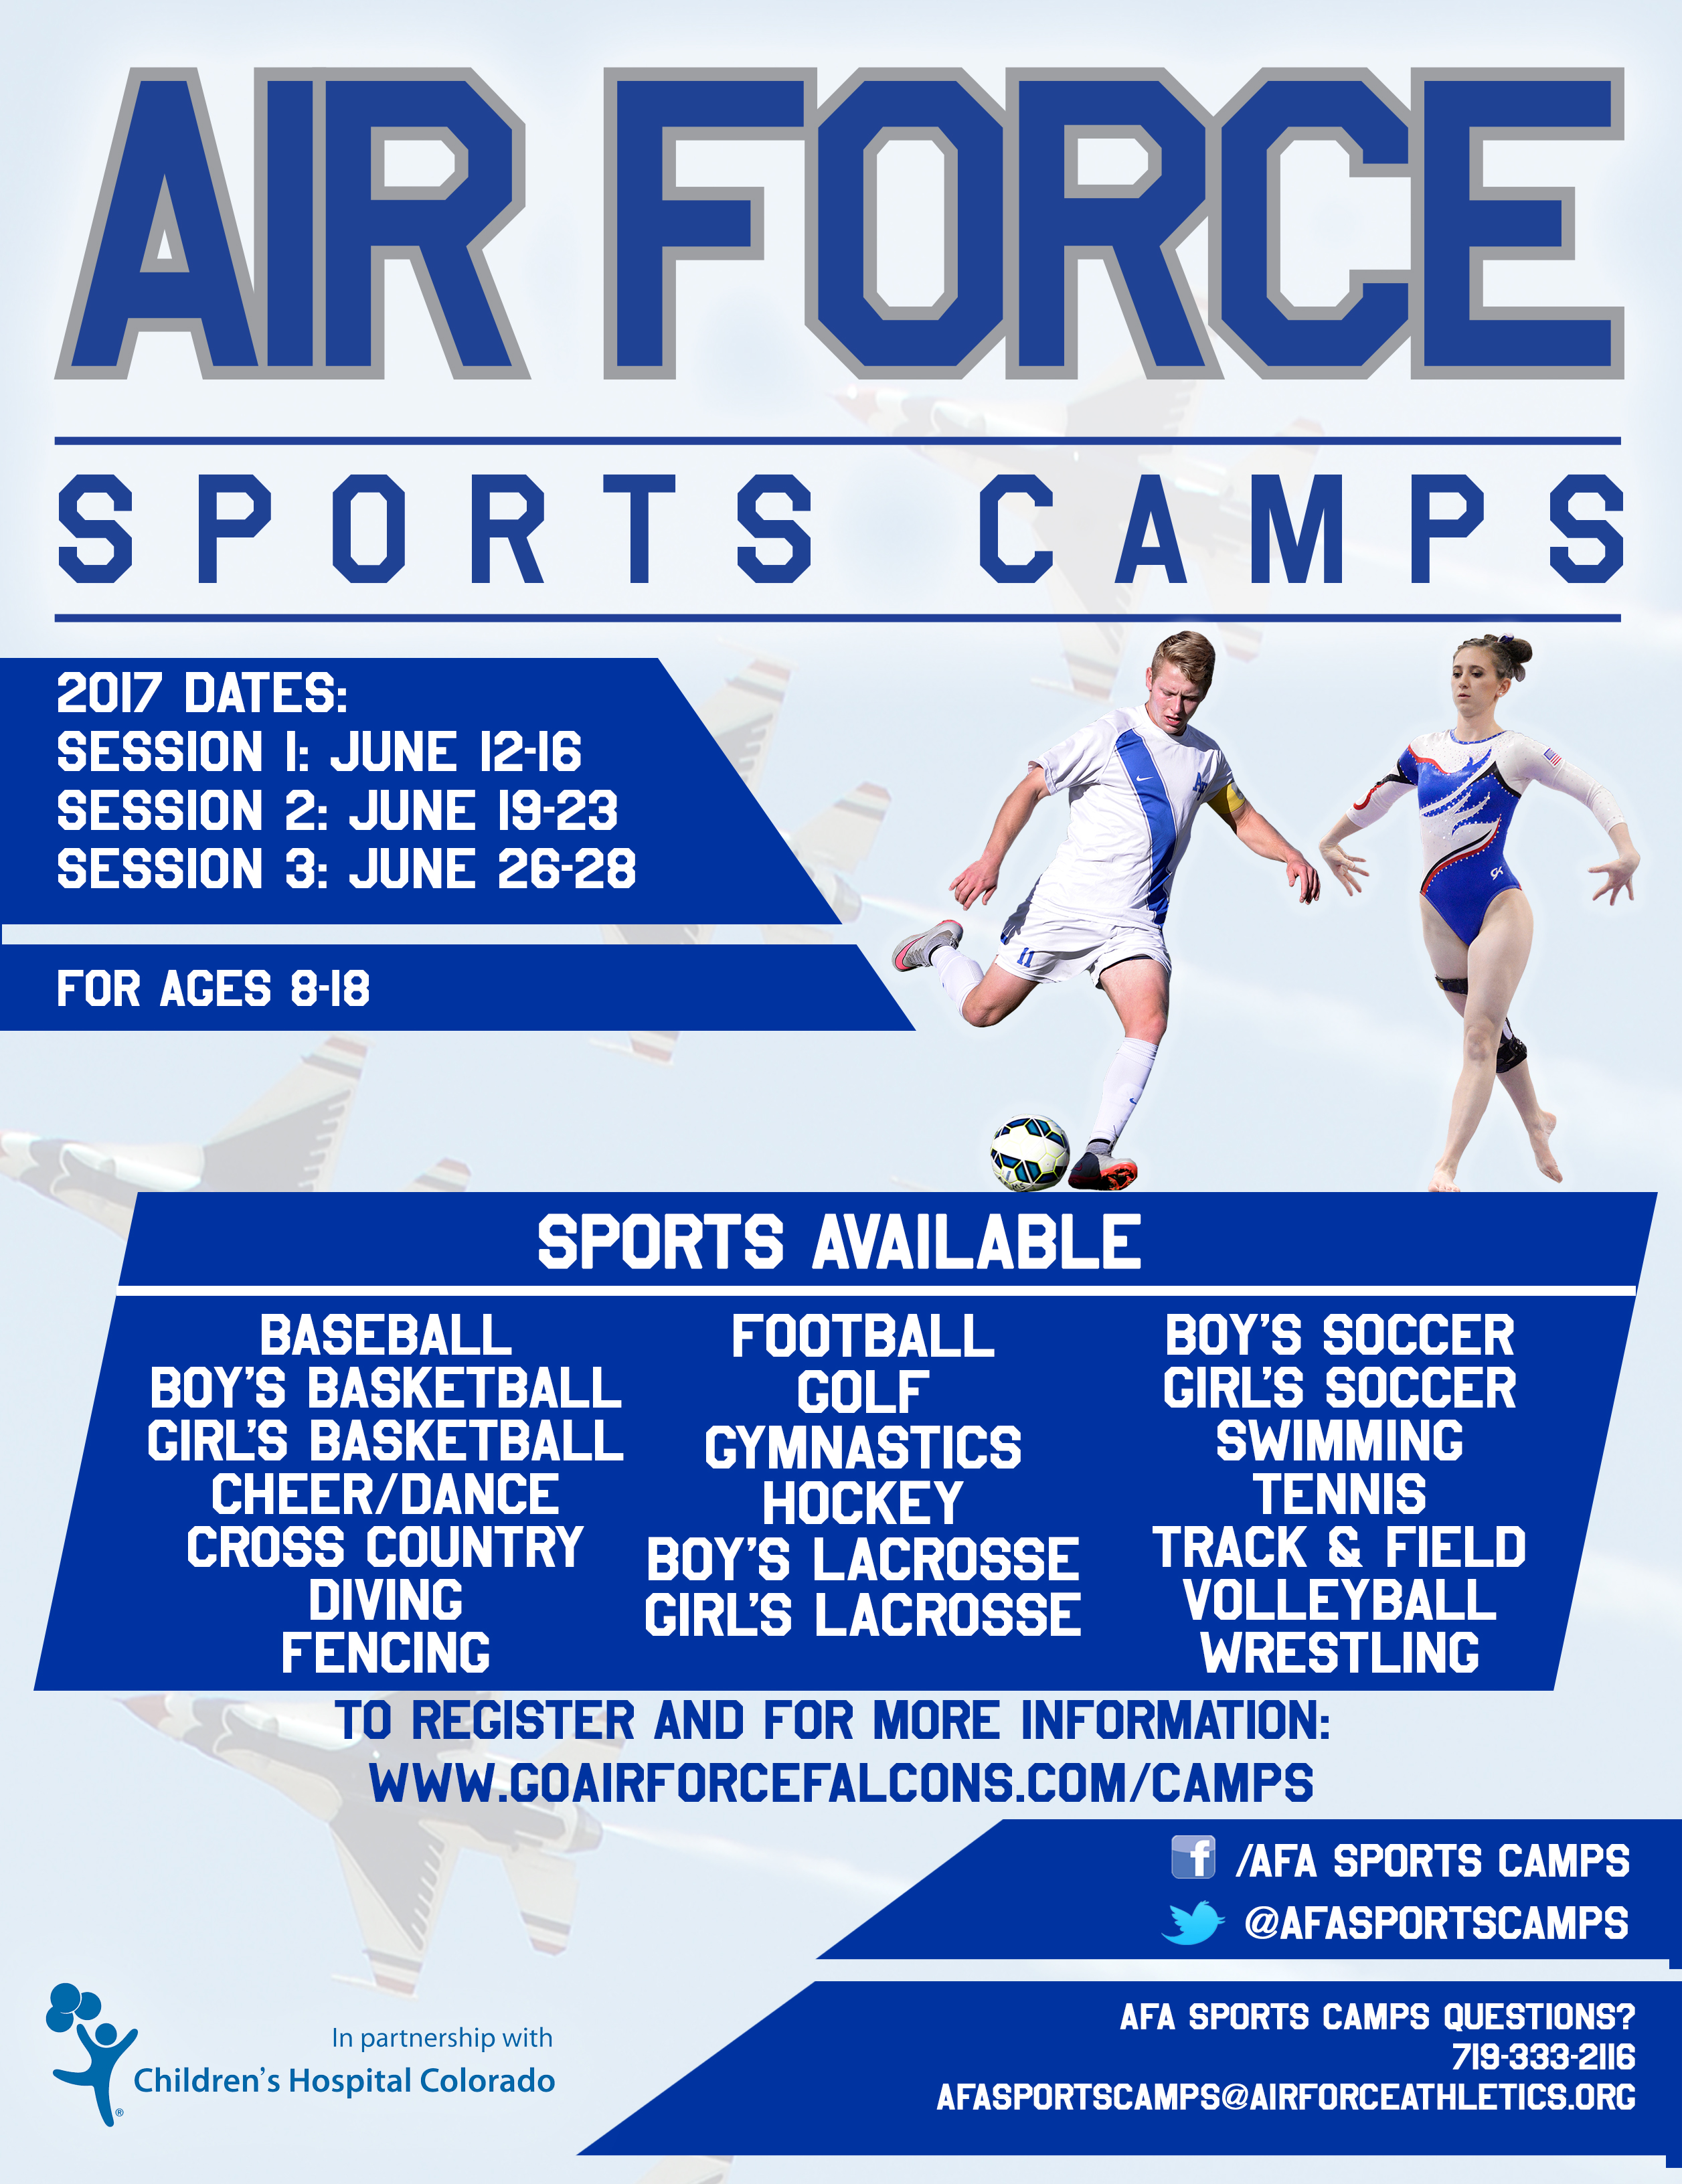 Air Force Sports Camps